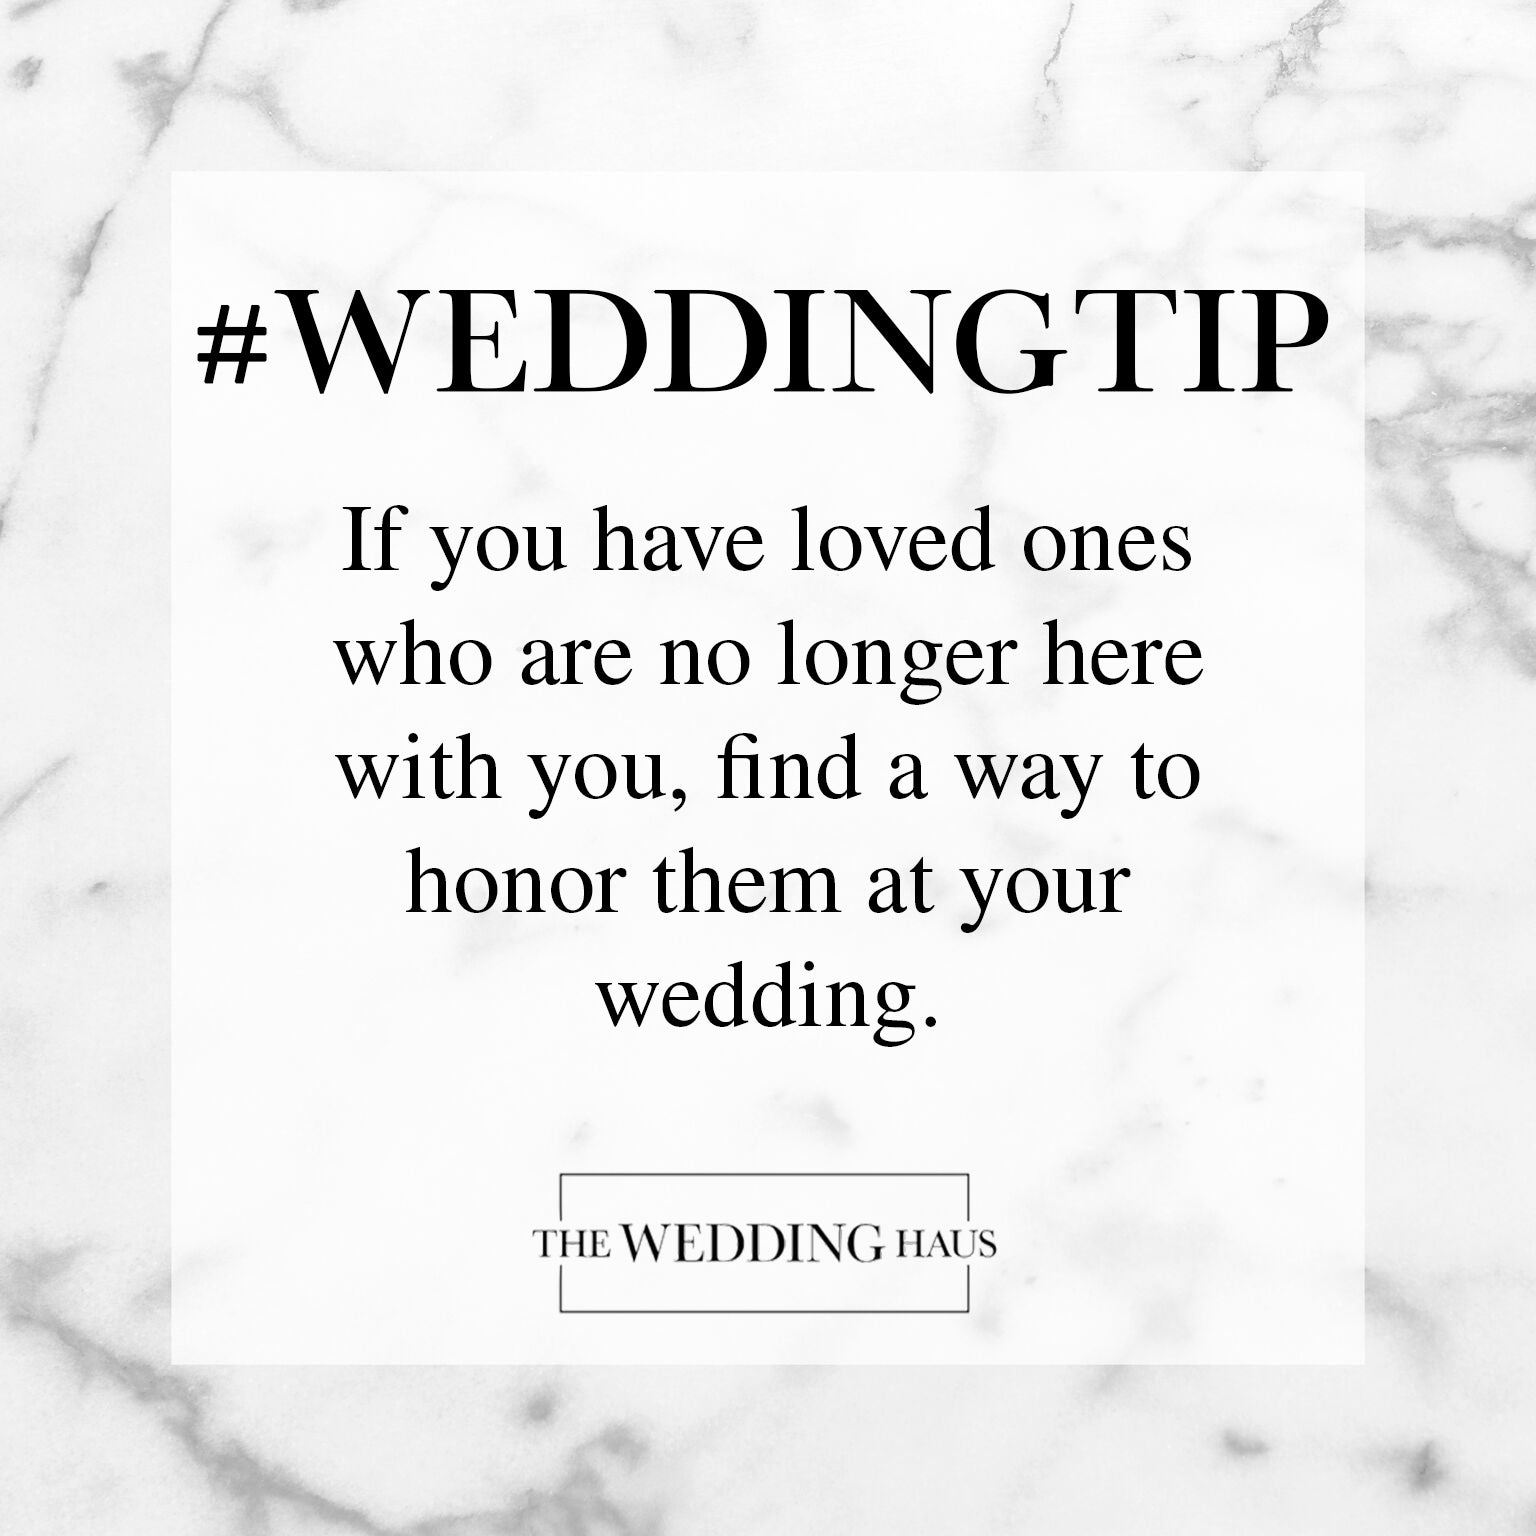 Honor Your Loved Ones Wedding Tip from The Wedding Haus